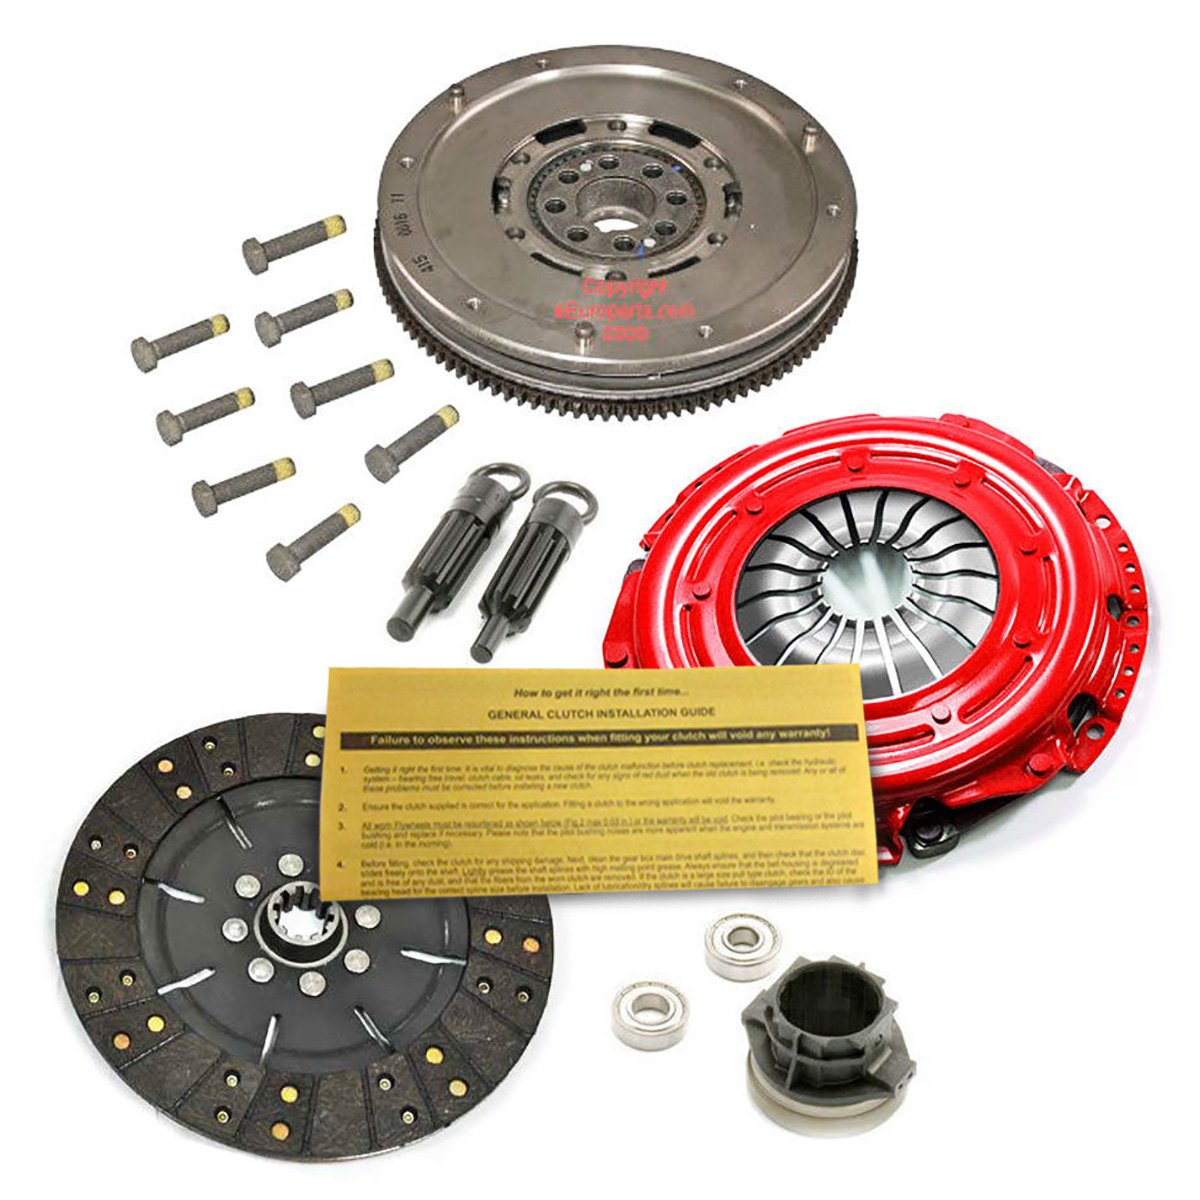 EFT etapa 2 Kit de embrague y nogal volante 91 - 98 BMW 318i es Ti Z3 1.8L 1.9L W/AC: Amazon.es: Coche y moto